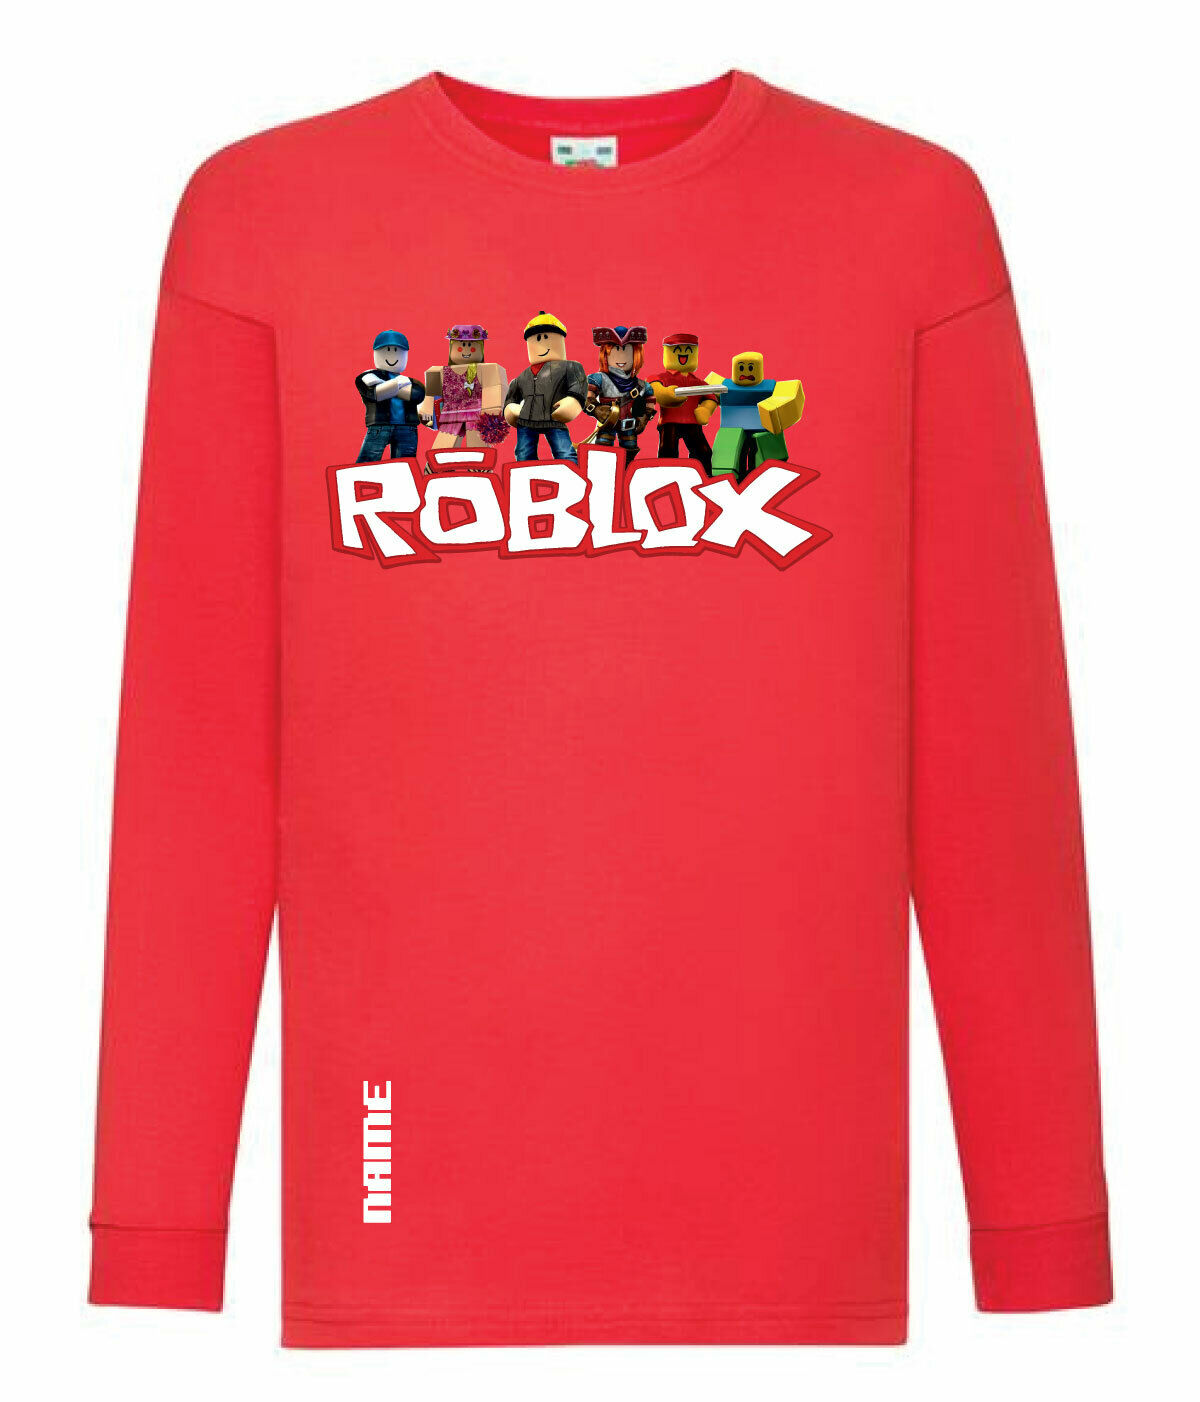 t-shirt personalise it with a name Red Roblox hooded top Roblox hoodie